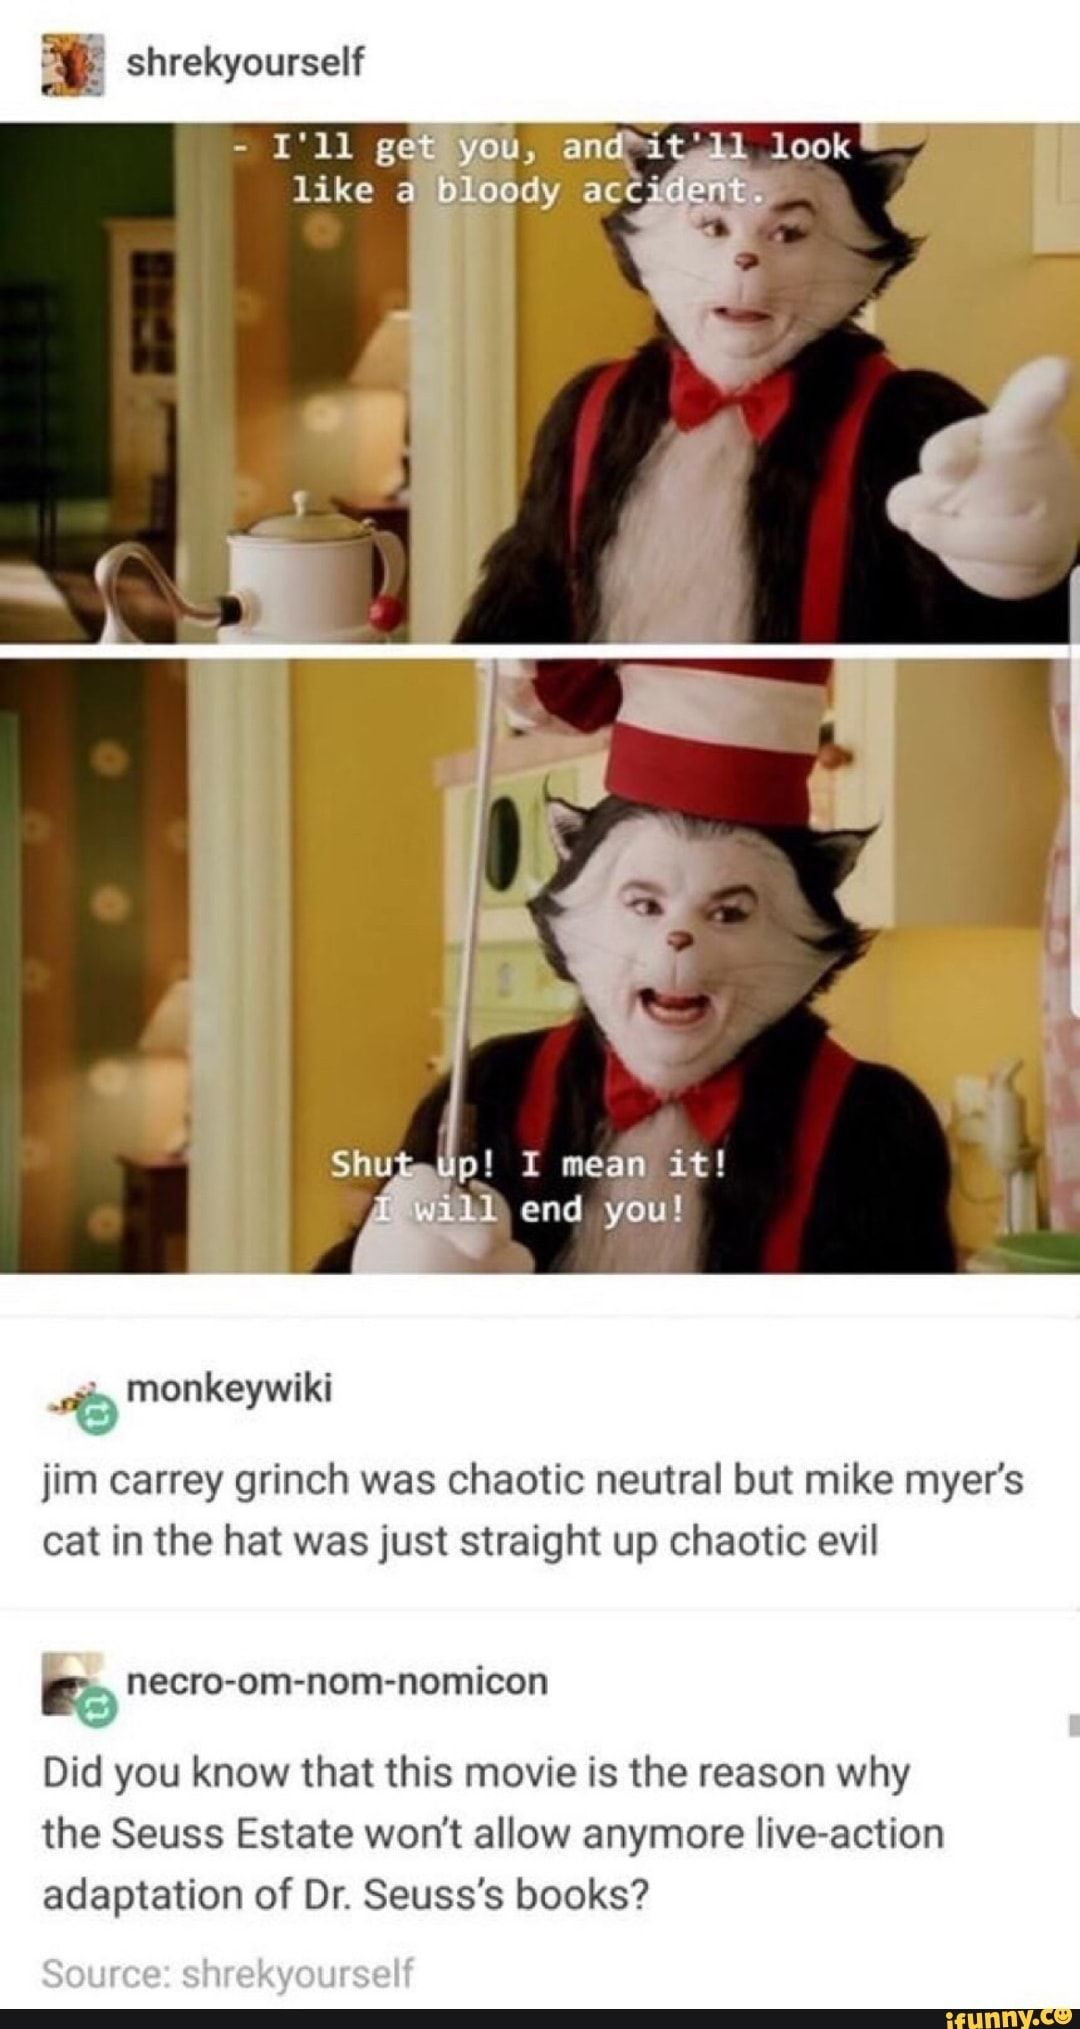 Jim Carrey Grinch Was Chaotic Neutral But Mike Myer S Cat In The Hat Was Just Straight Up Chaotic Evil Necro Om Nom Nomicon Did You Know That This Movie Is Th Funny Memes